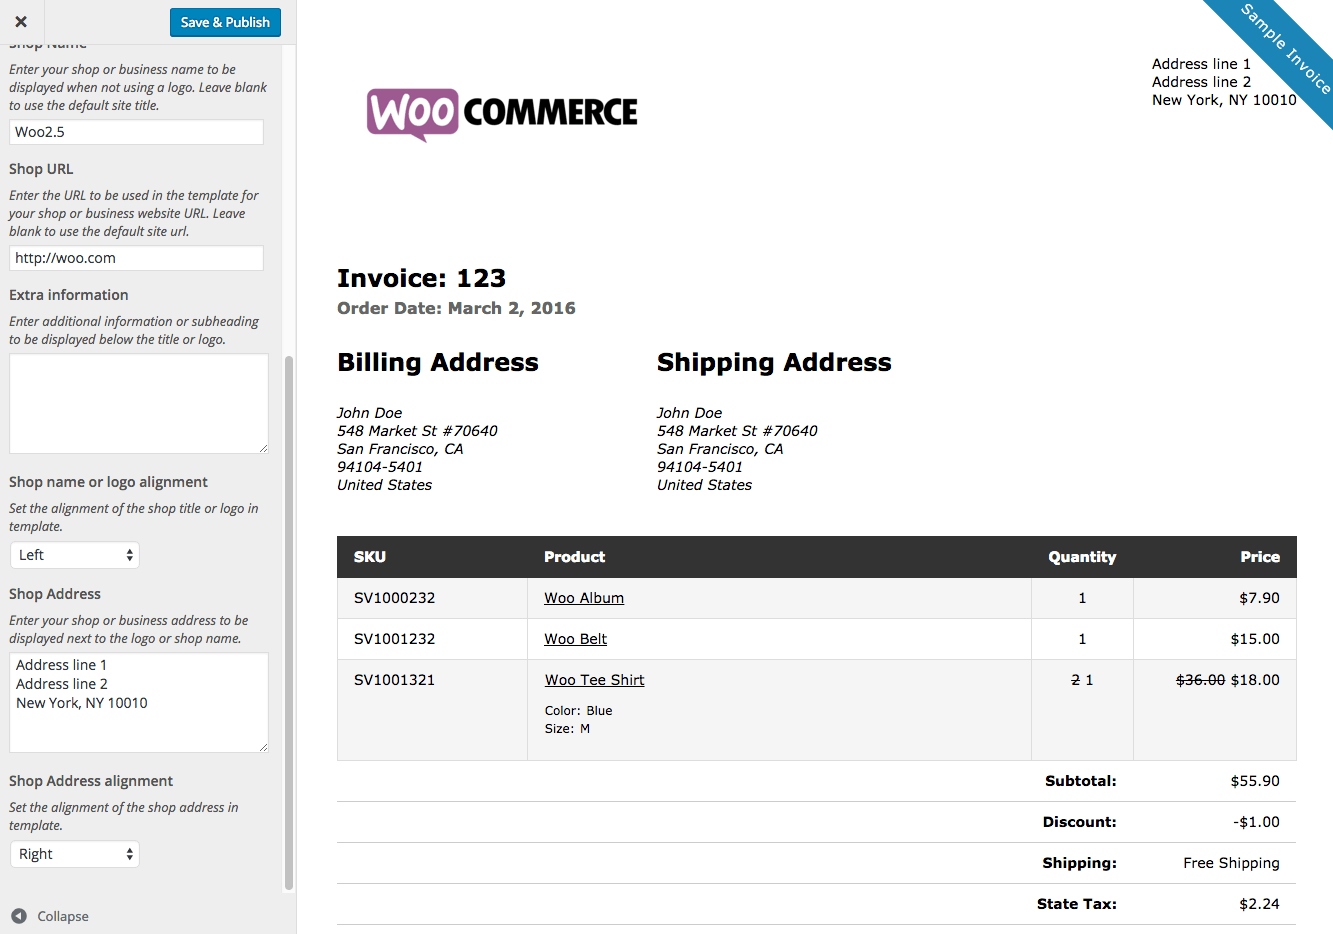 Maidofhonortoastus  Fascinating Woocommerce Print Invoices Amp Packing Lists  Woocommerce Docs With Magnificent Woocommerce Print Invoices  Packing Lists Customizer With Divine Deposit Receipt Template Free Also Tuna Receipt In Addition Donation Receipt Form Template And Pumpkin Receipts As Well As Sample Acknowledgement Receipt Letter Additionally Point Of Sale Receipt Printer From Docswoocommercecom With Maidofhonortoastus  Magnificent Woocommerce Print Invoices Amp Packing Lists  Woocommerce Docs With Divine Woocommerce Print Invoices  Packing Lists Customizer And Fascinating Deposit Receipt Template Free Also Tuna Receipt In Addition Donation Receipt Form Template From Docswoocommercecom